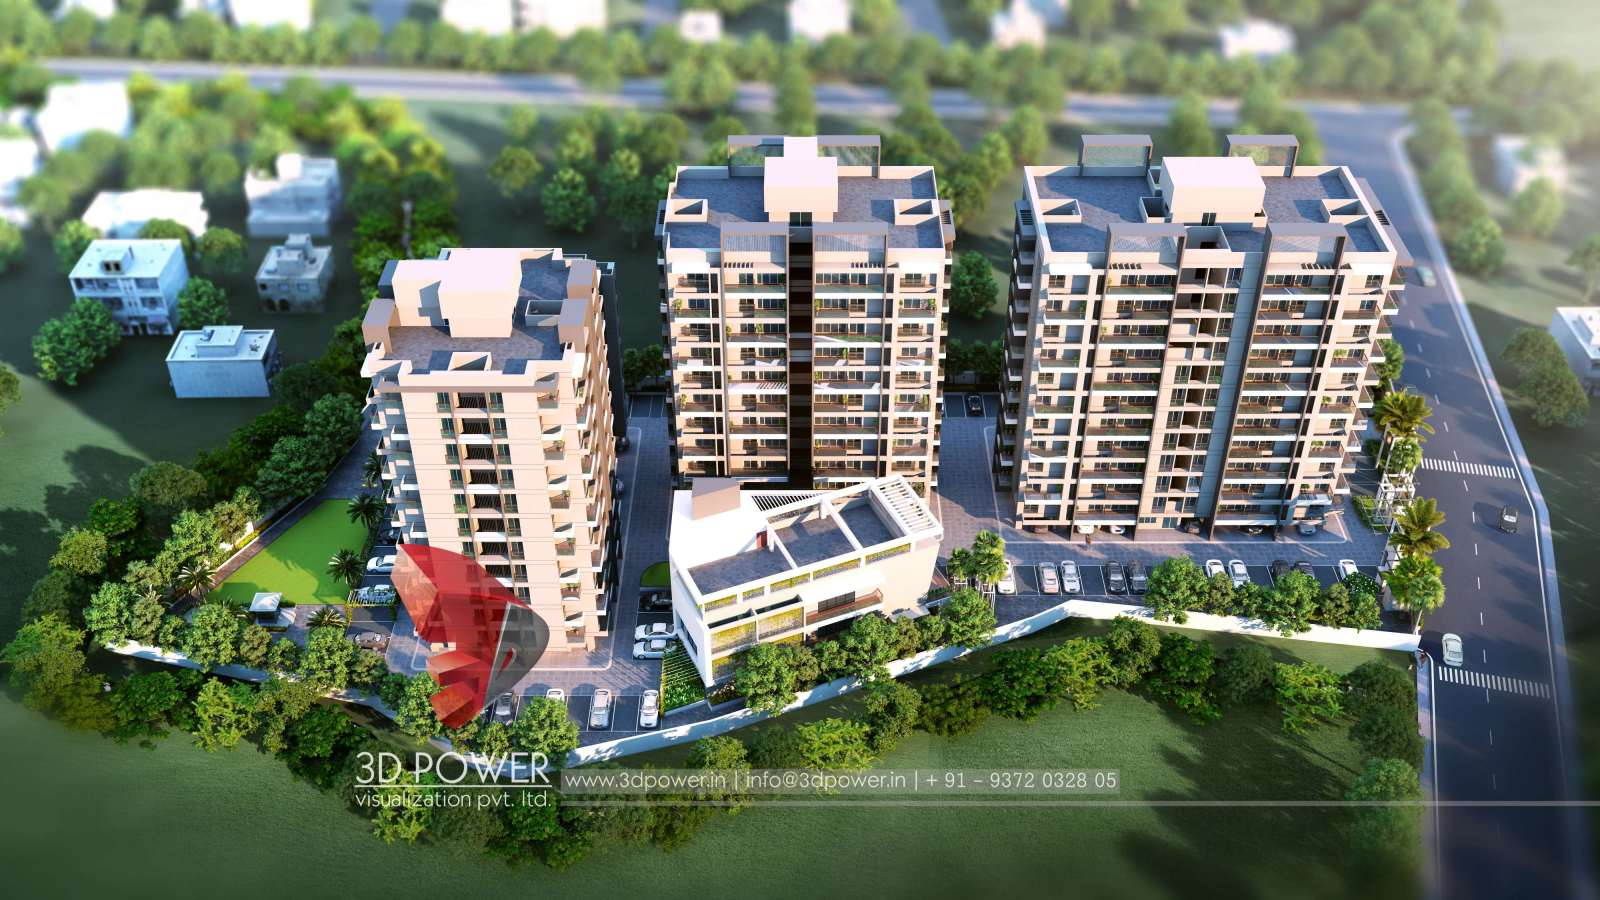 rendering-services-apartment-birds-eye-view